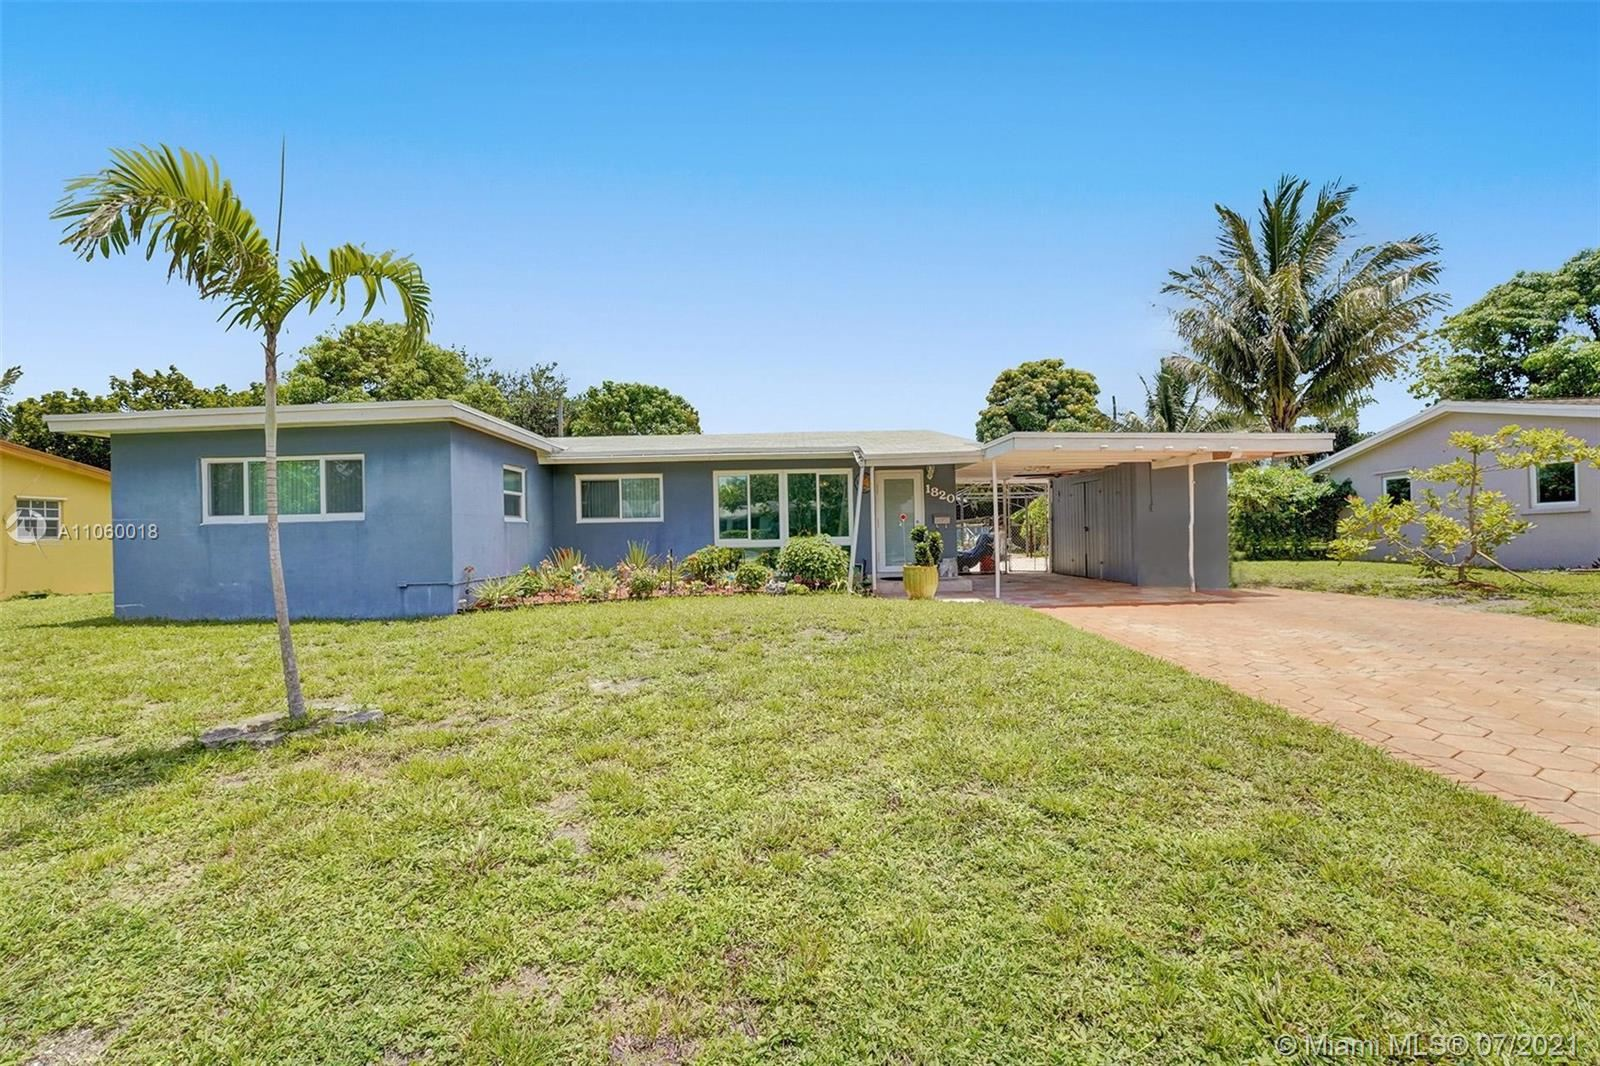 1820 SW 36th Ave, Fort Lauderdale, FL 33312 - #: A11060018